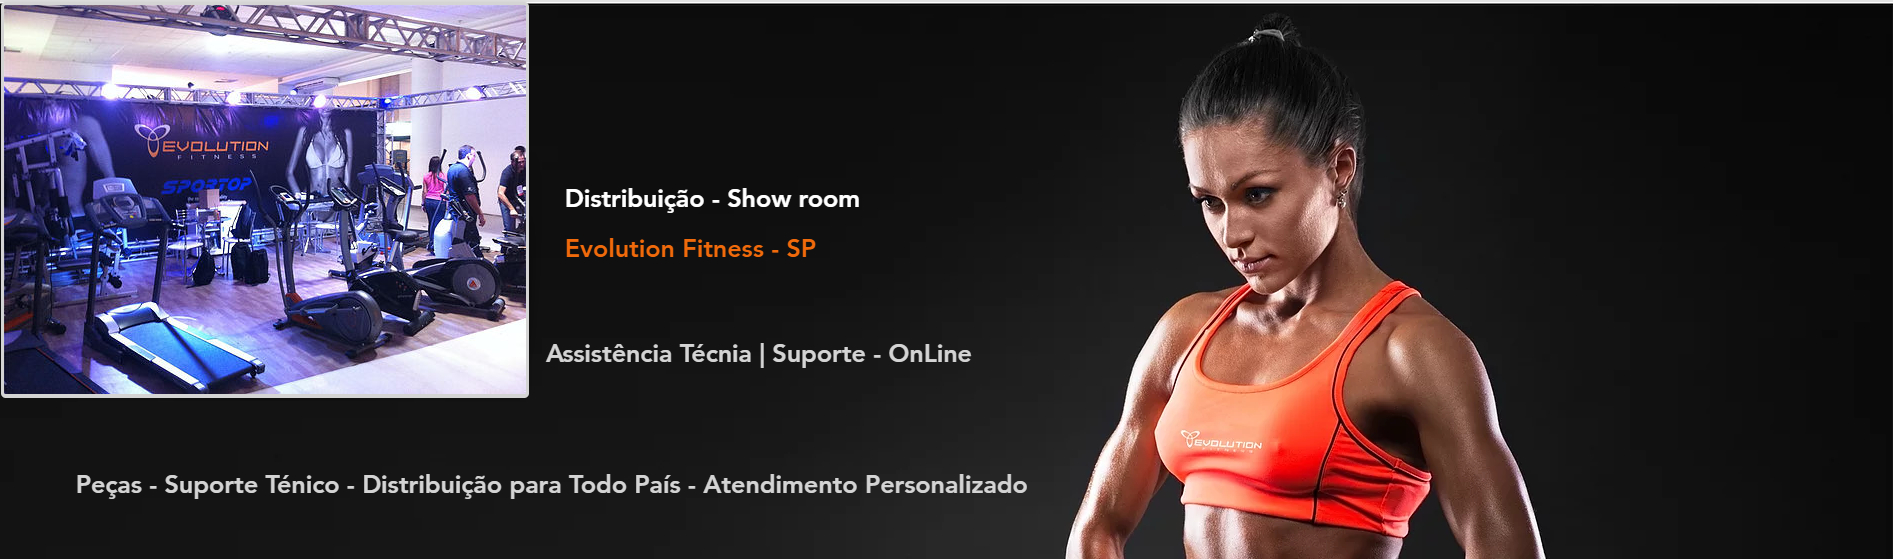 Assistencia Técnica Evolution Fitness